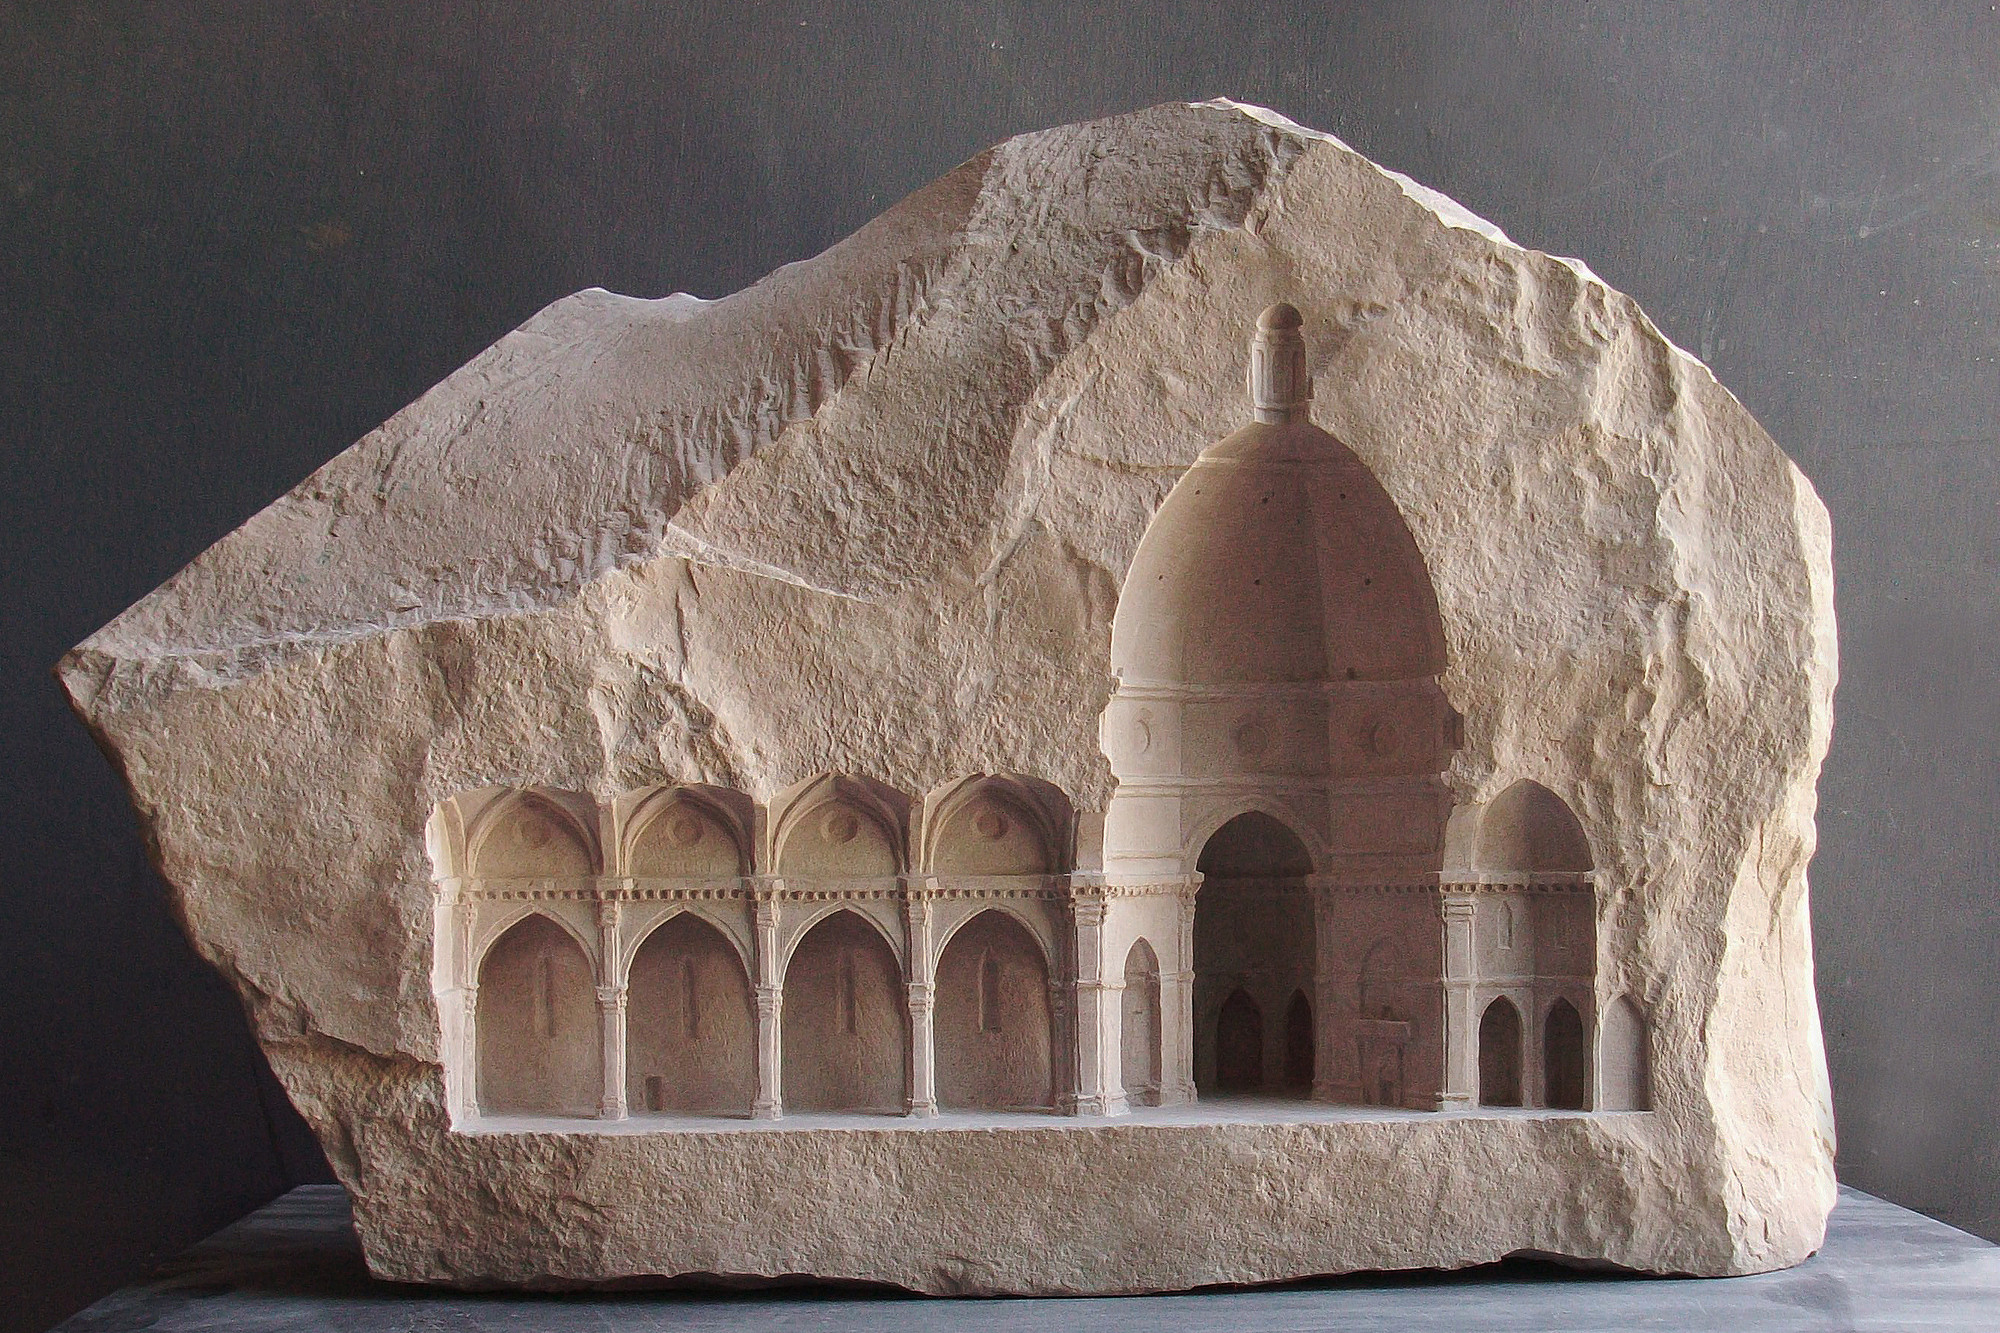 Miniature Spaces Carved From Stone, Santa Maria del Fiore, Florence. Image © Matthew Simmonds